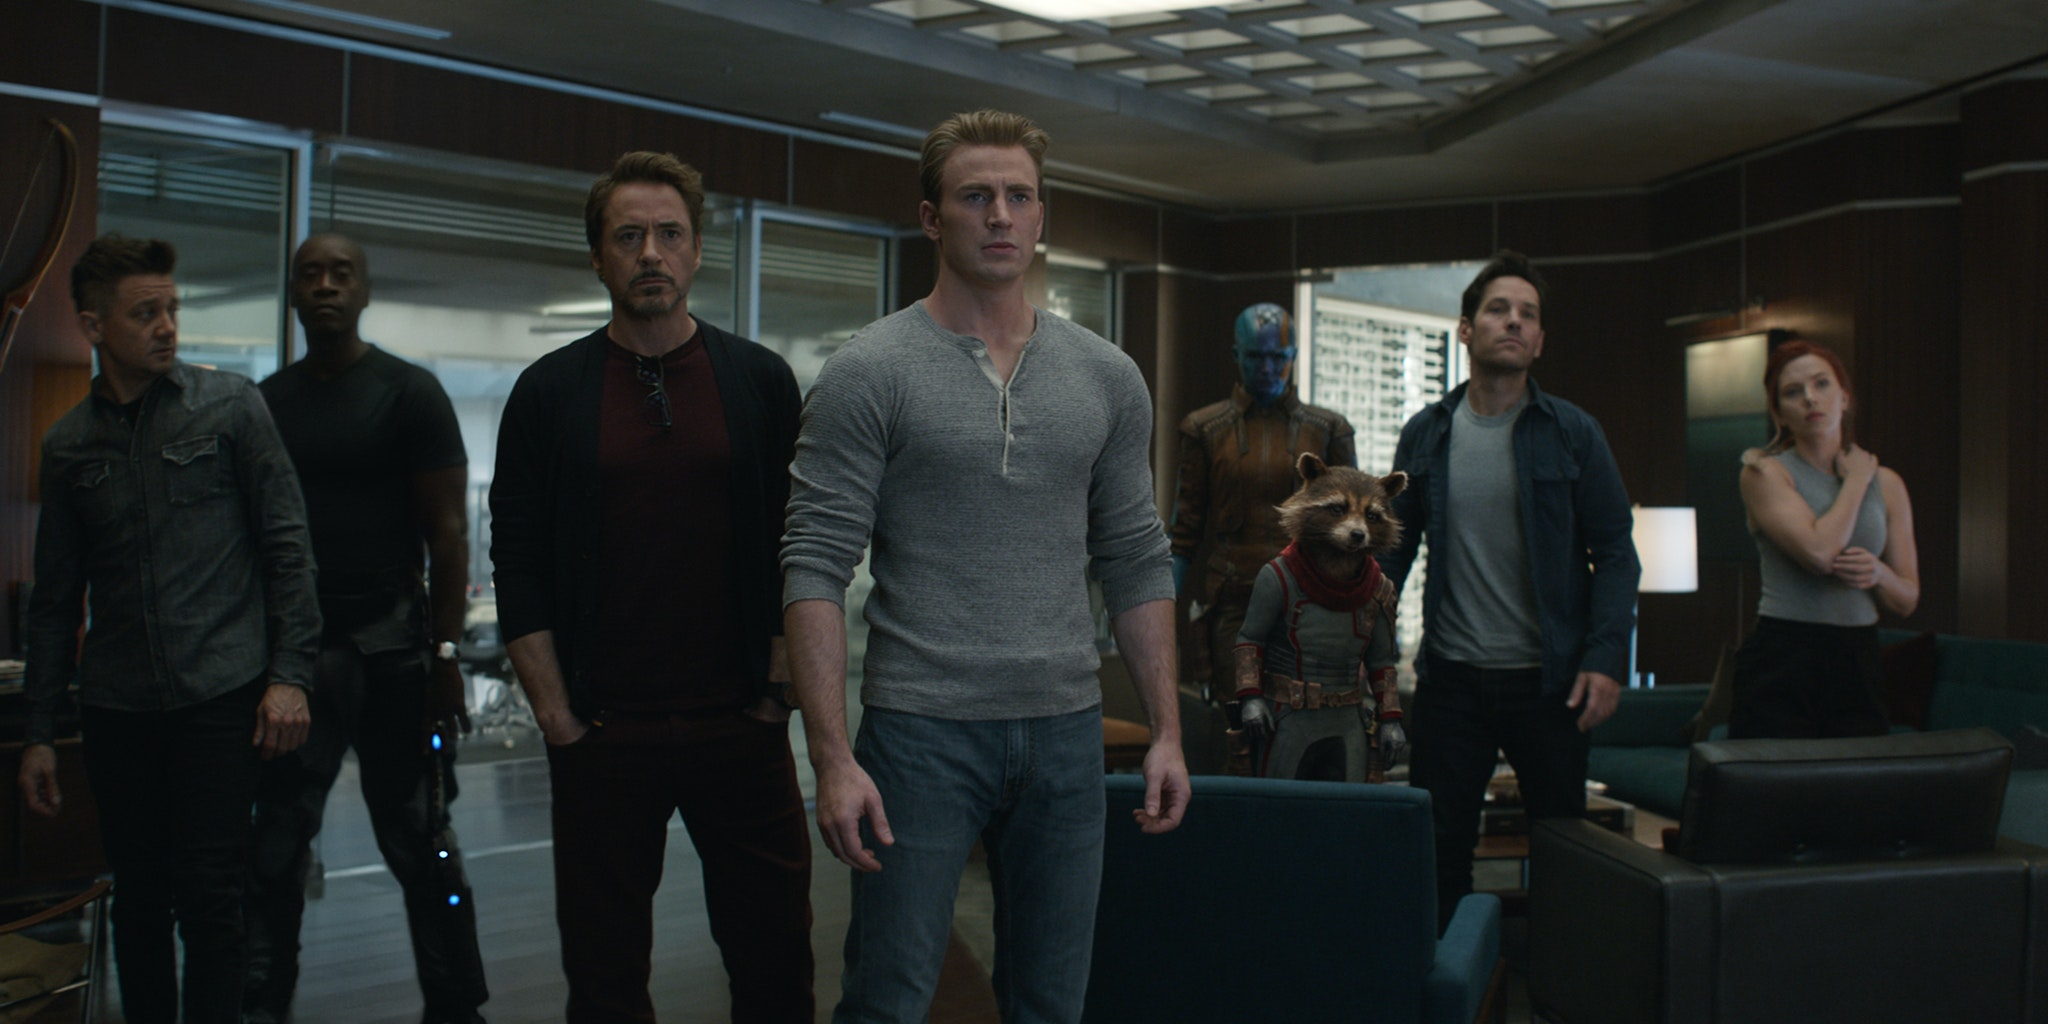 Does 'Avengers: Endgame' Have a Post-Credits Scene? A Spoiler-Free Guide